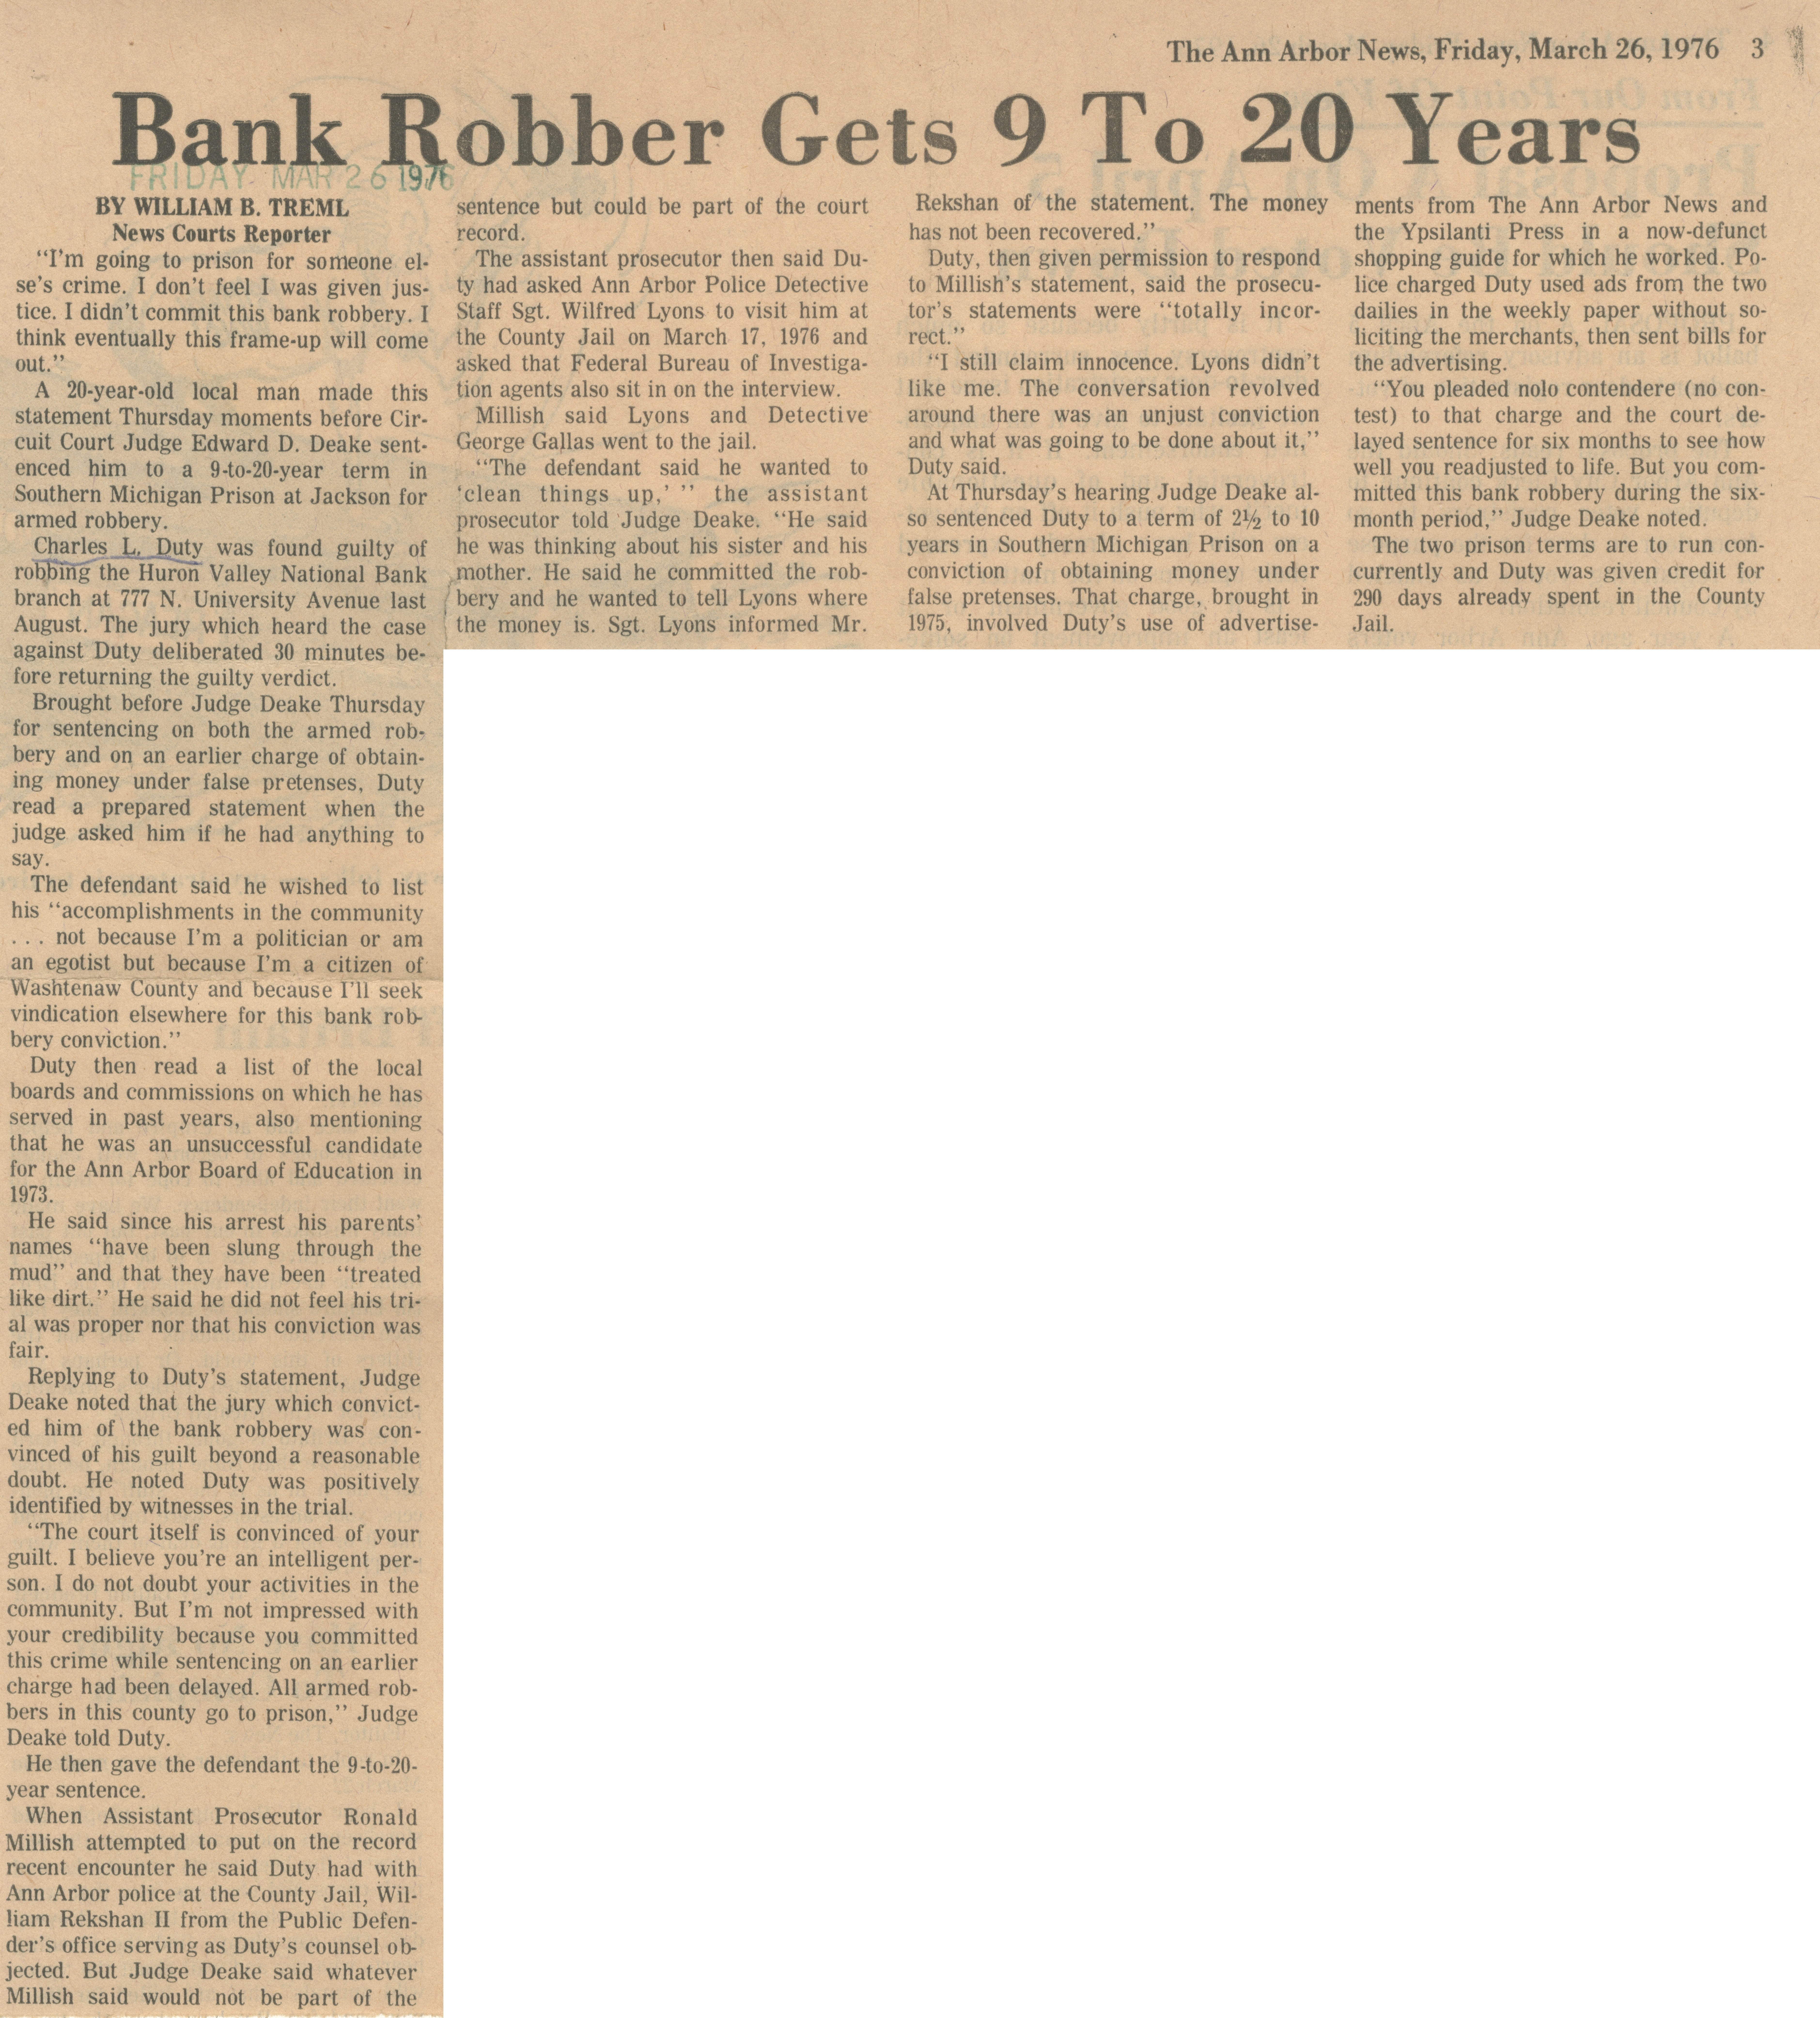 Bank Robber Gets 9 To 20 Years image